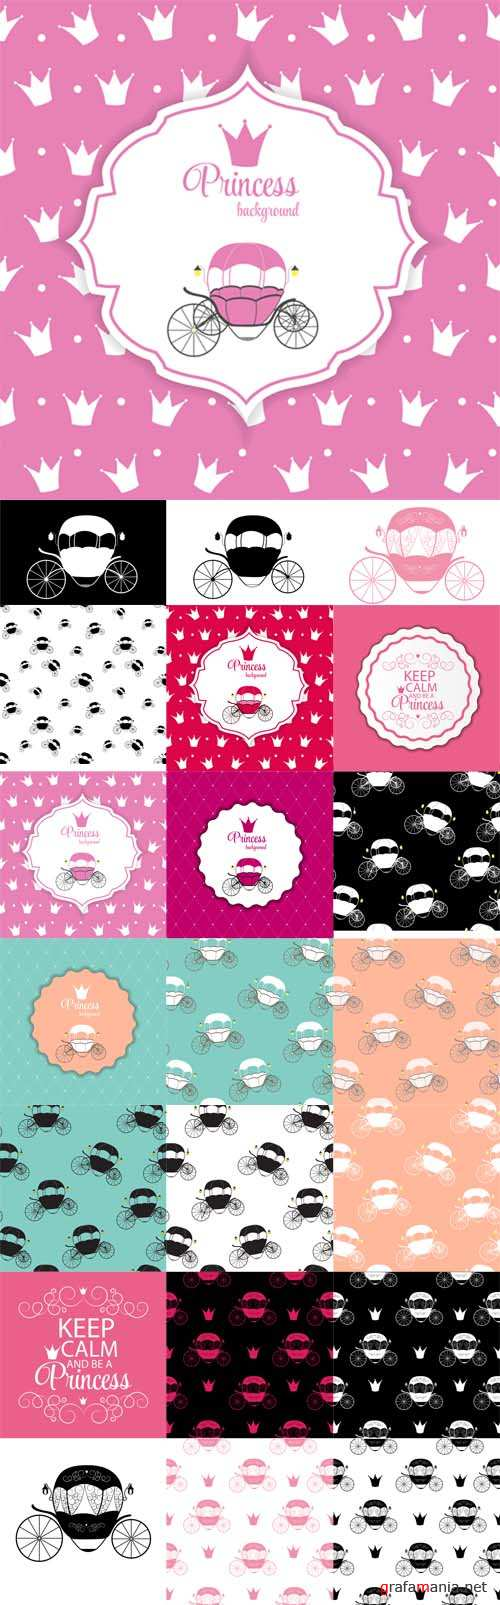 Vector Cinderella Fairytale Carriage and Seamless Patterns